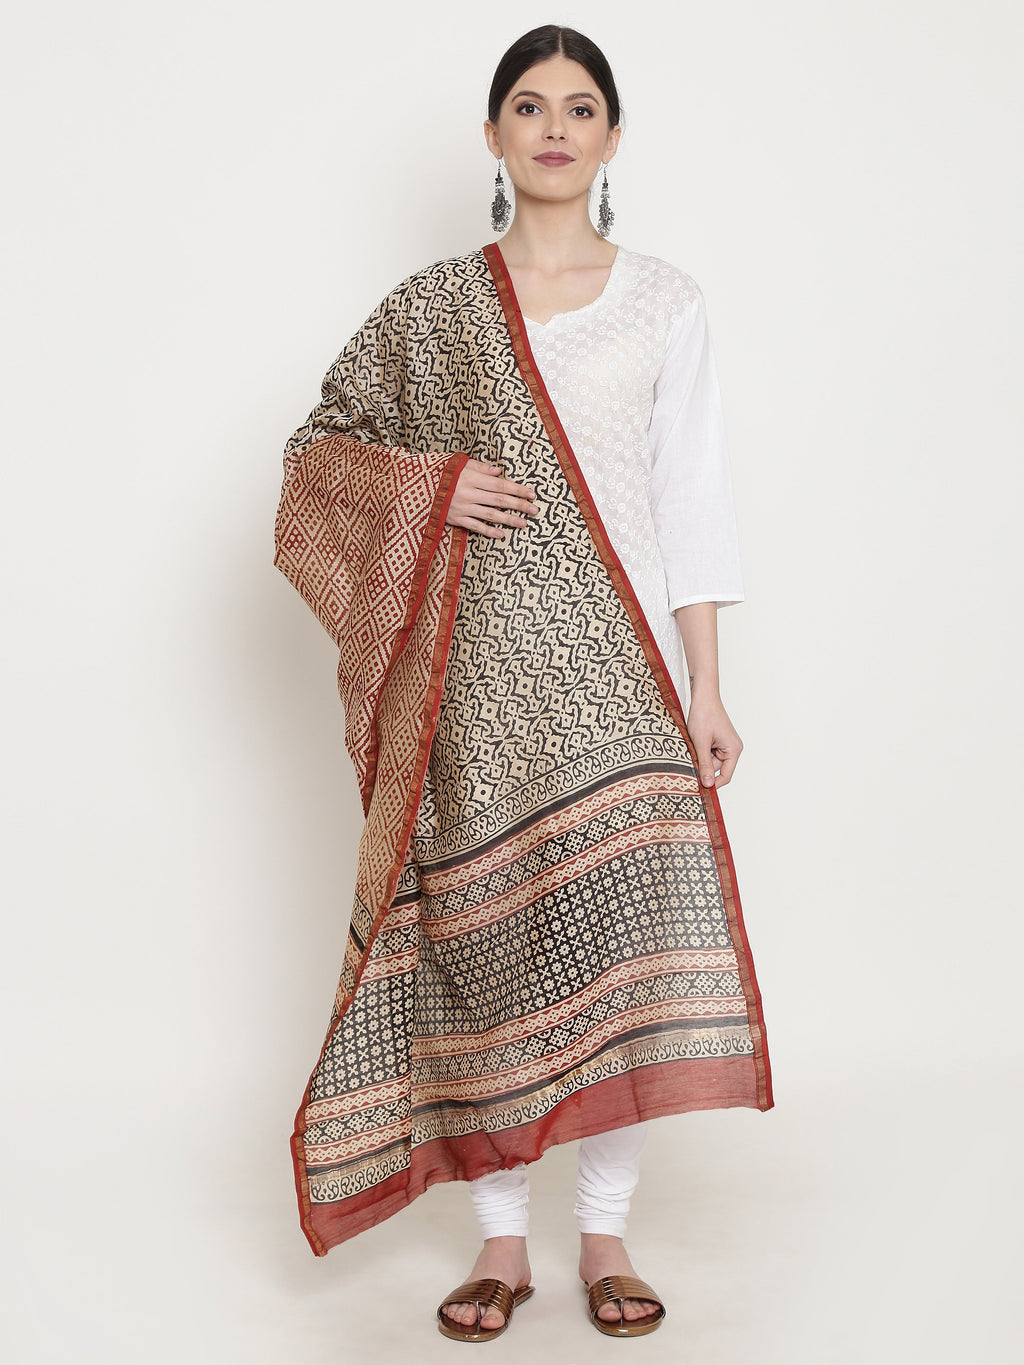 Exotic Chanderi Silk Handmade Dupatta-Dupatta-Kalakari India-BHKPDP0007-Chanderi, Dupatta, Geographical Indication, Hand Blocks, Hand Crafted, Heritage Prints, Silk, Sustainable Fabrics-[Linen,Ethnic,wear,Fashionista,Handloom,Handicraft,Indigo,blockprint,block,print,Cotton,Chanderi,Blue, latest,classy,party,bollywood,trendy,summer,style,traditional,formal,elegant,unique,style,hand,block,print, dabu,booti,gift,present,glamorous,affordable,collectible,Sari,Saree,printed, holi, Diwali, birthday, an